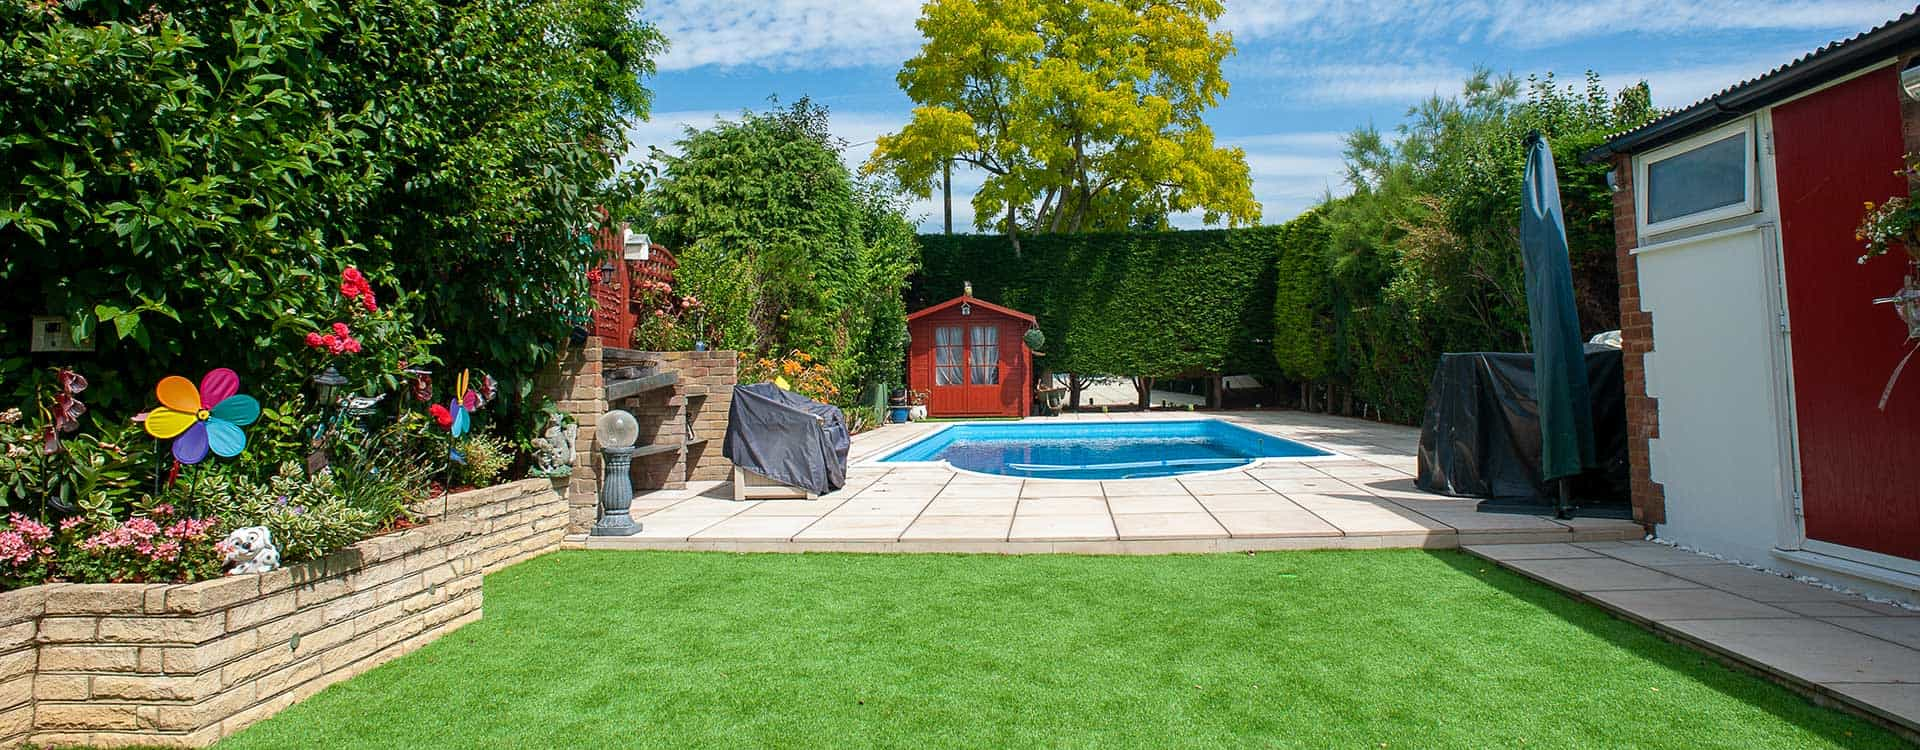 landscaping small garden with swimming pool